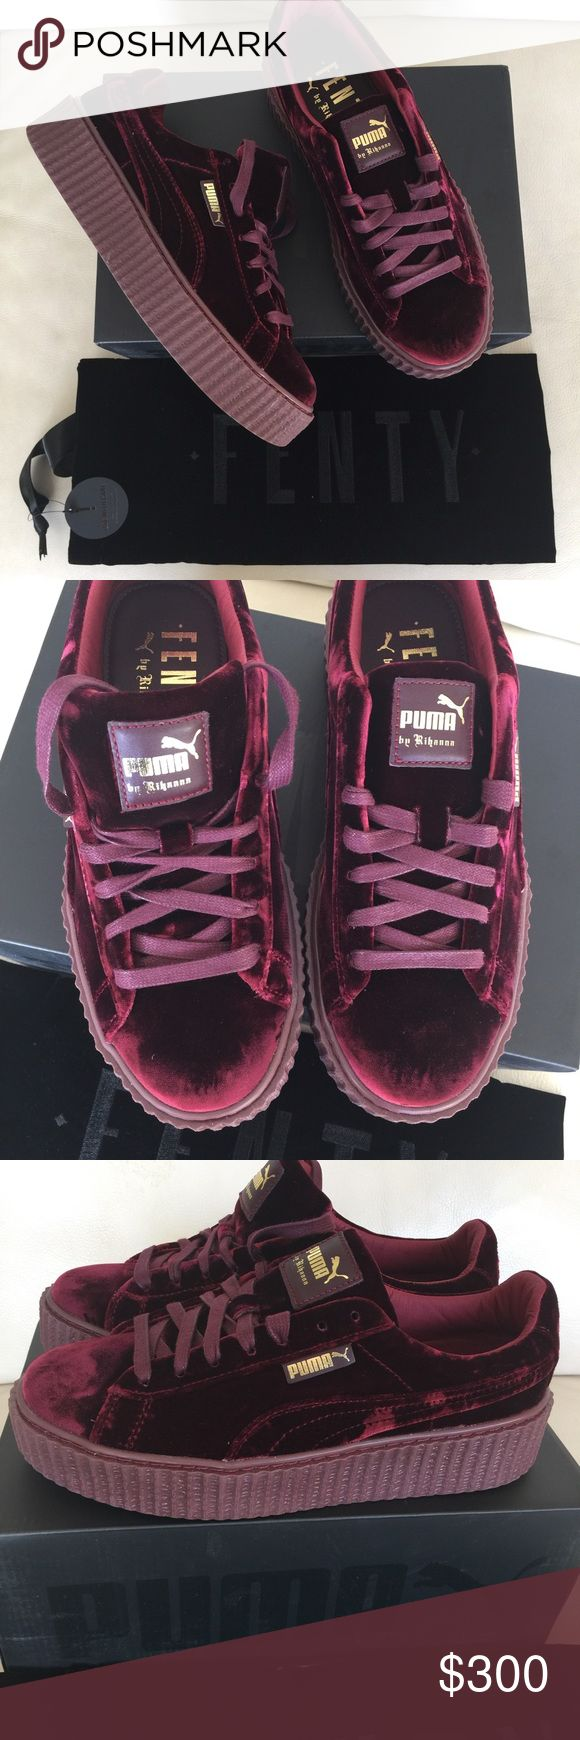 Rihanna Fenty Puma Wine Velvet Creepers Sneakers 9 Brand new in box are these Fenty Puma Creepers by Rihanna. Sold out in less than 5 minutes! I bought 2 pairs, one for me and one for my posh ladies! Get this one while you can and it should be there in time for the holidays if you order TODAY!!!! Lovin' Um!!! So much cuter in person than the pics show!!! Be the coolest parent, aunt, uncle, brother, sister, on the block and get these for any girl you love!!! Puma Shoes Sneakers